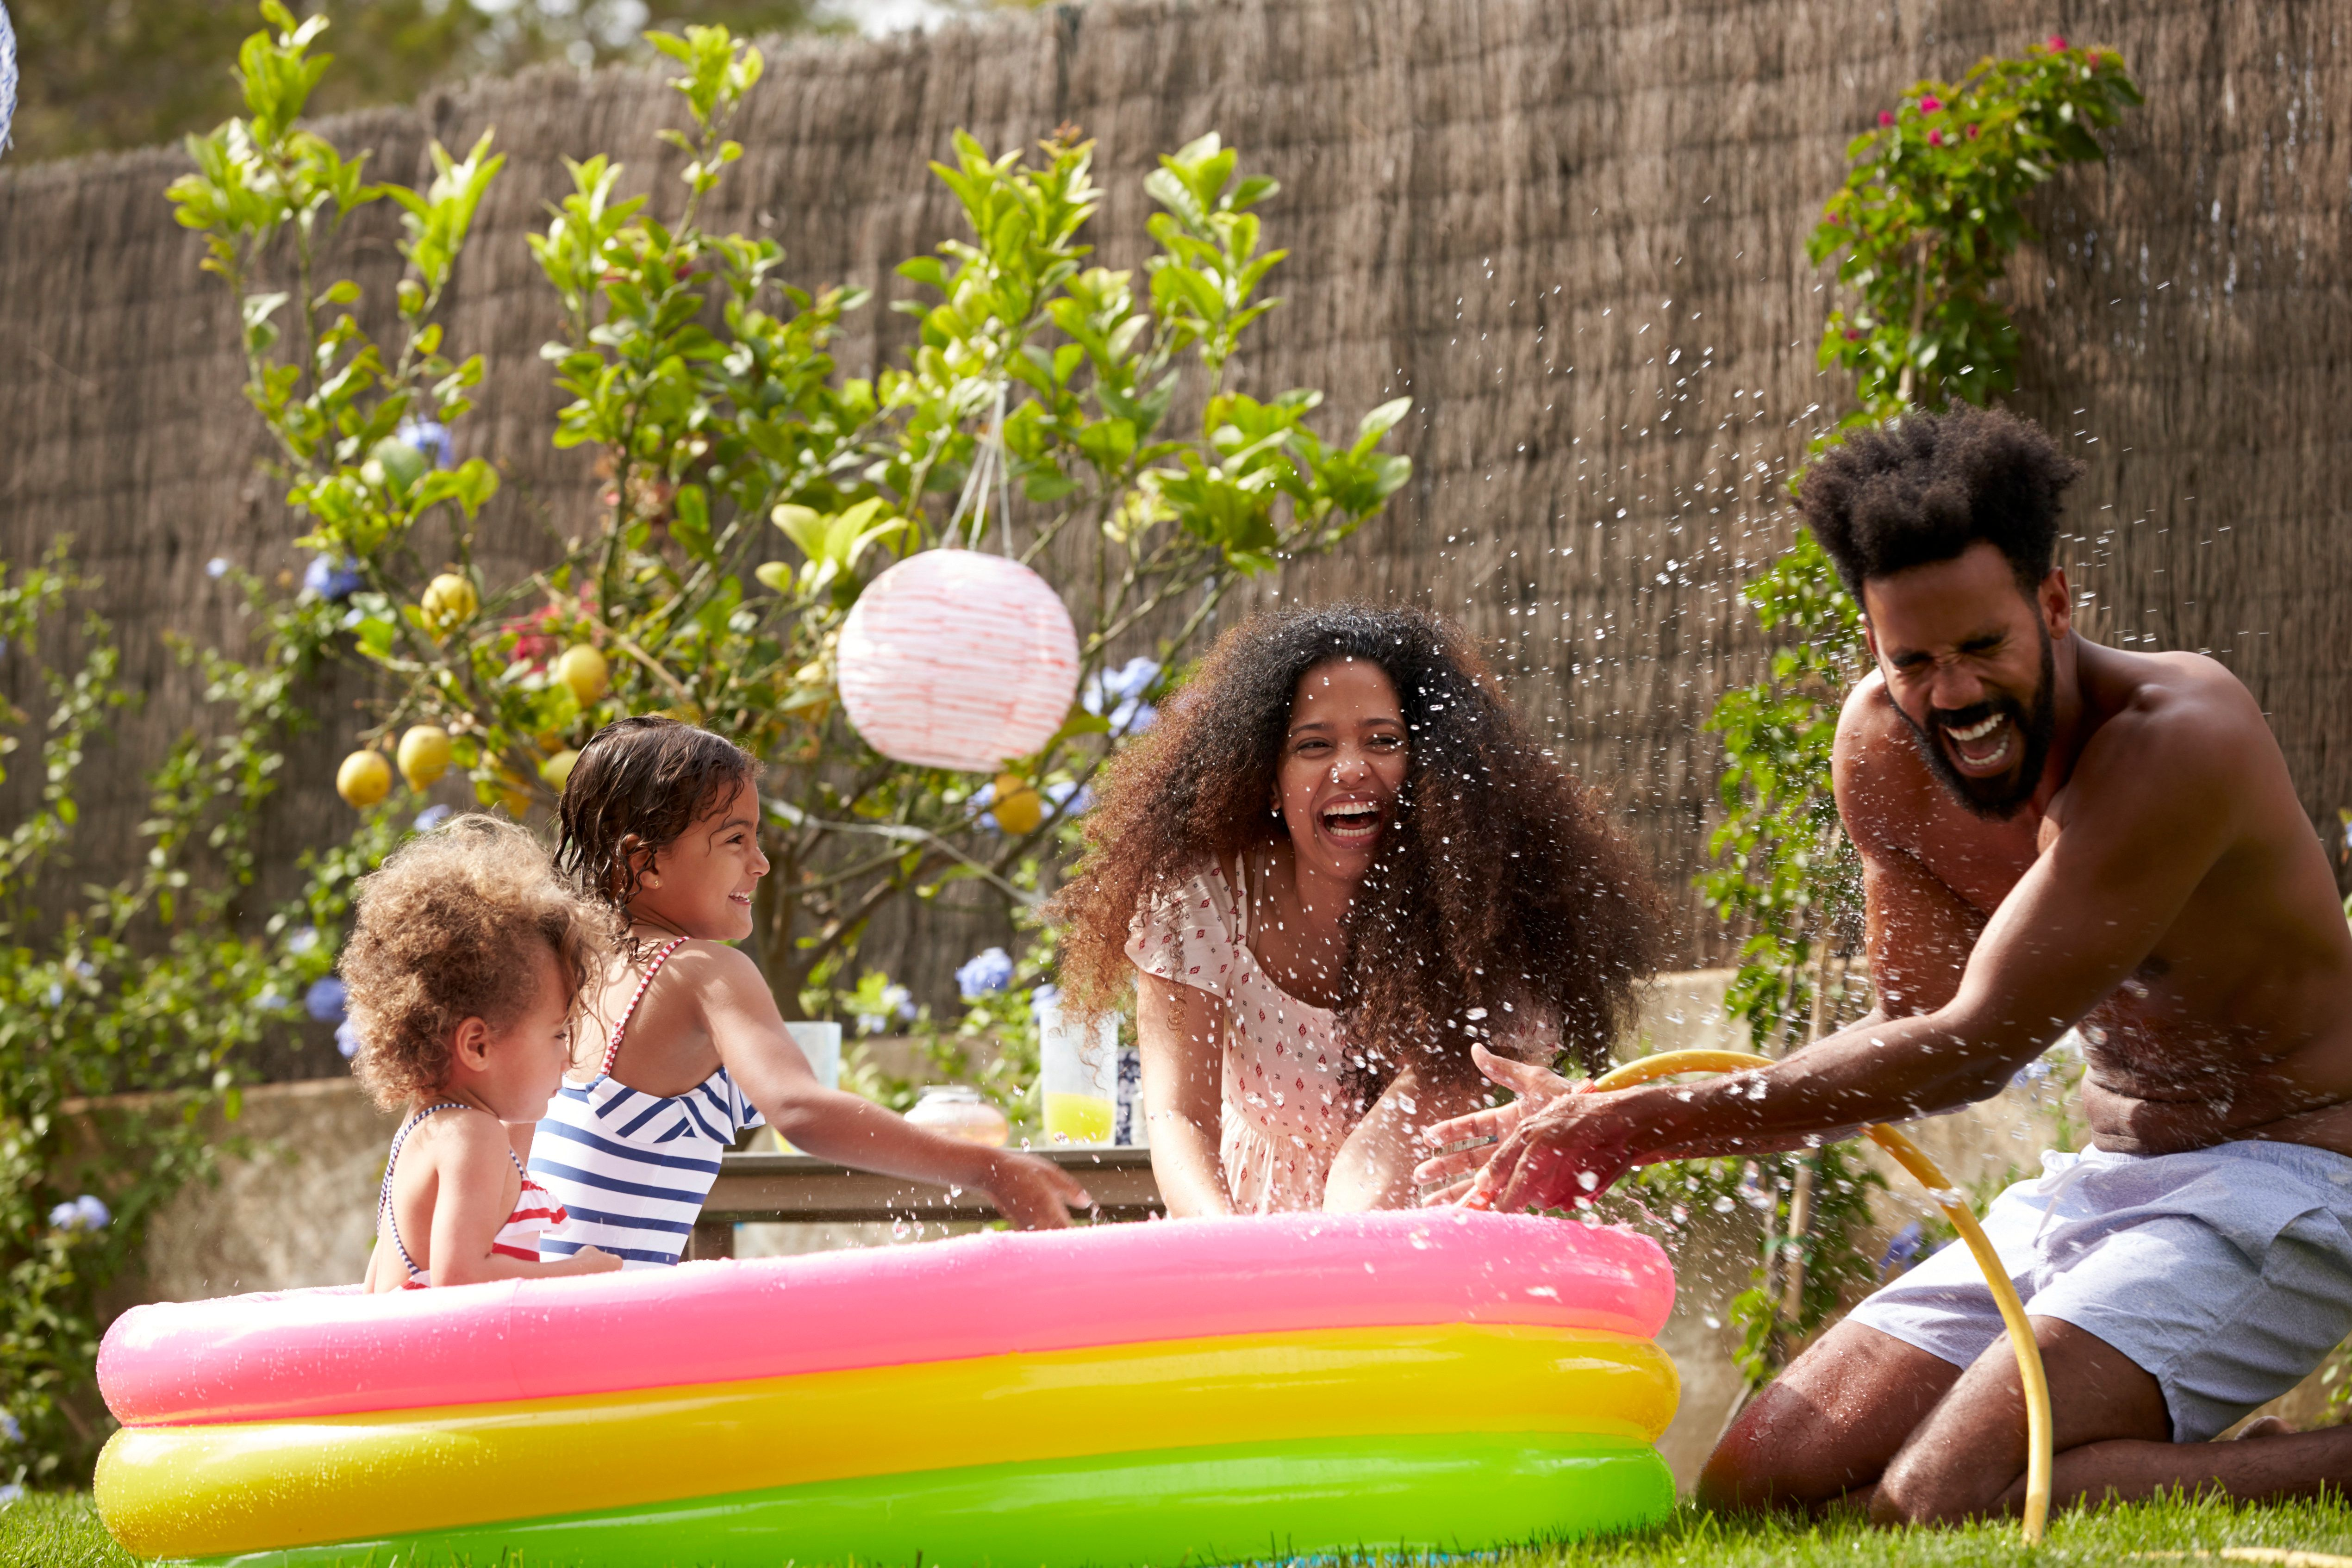 How Often Should You Change Paddling Pool Water To Keep It